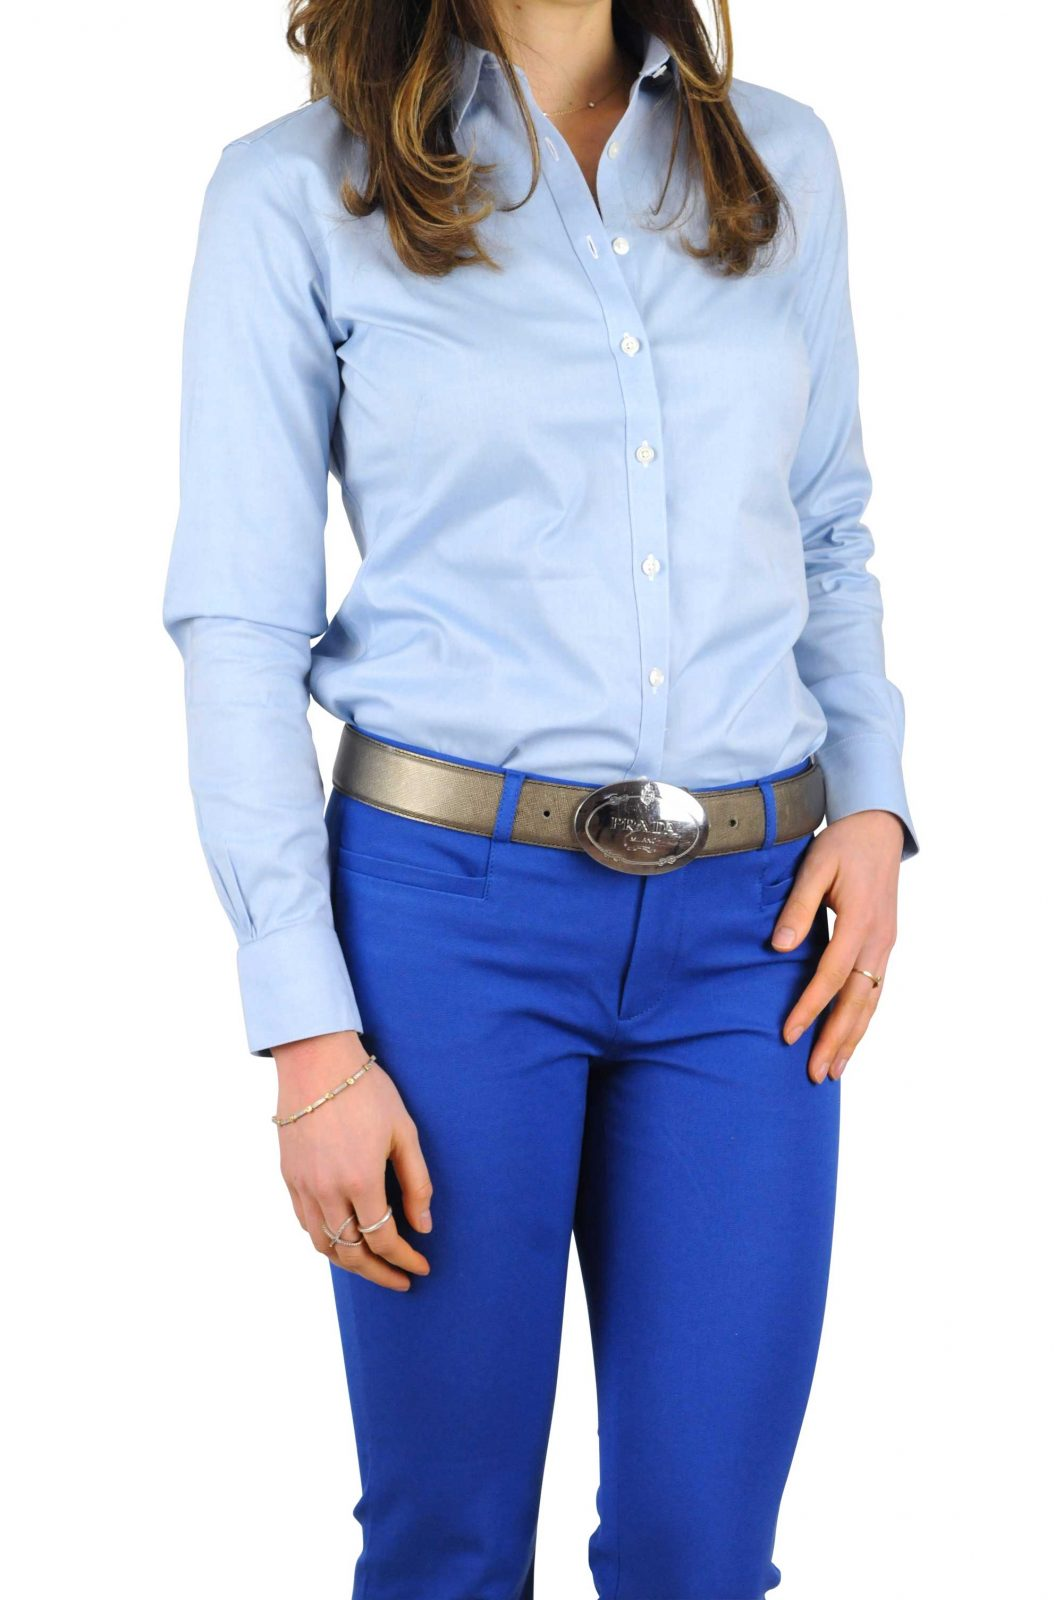 Woman in blue shirt and pants with a sloppy untucked appearance